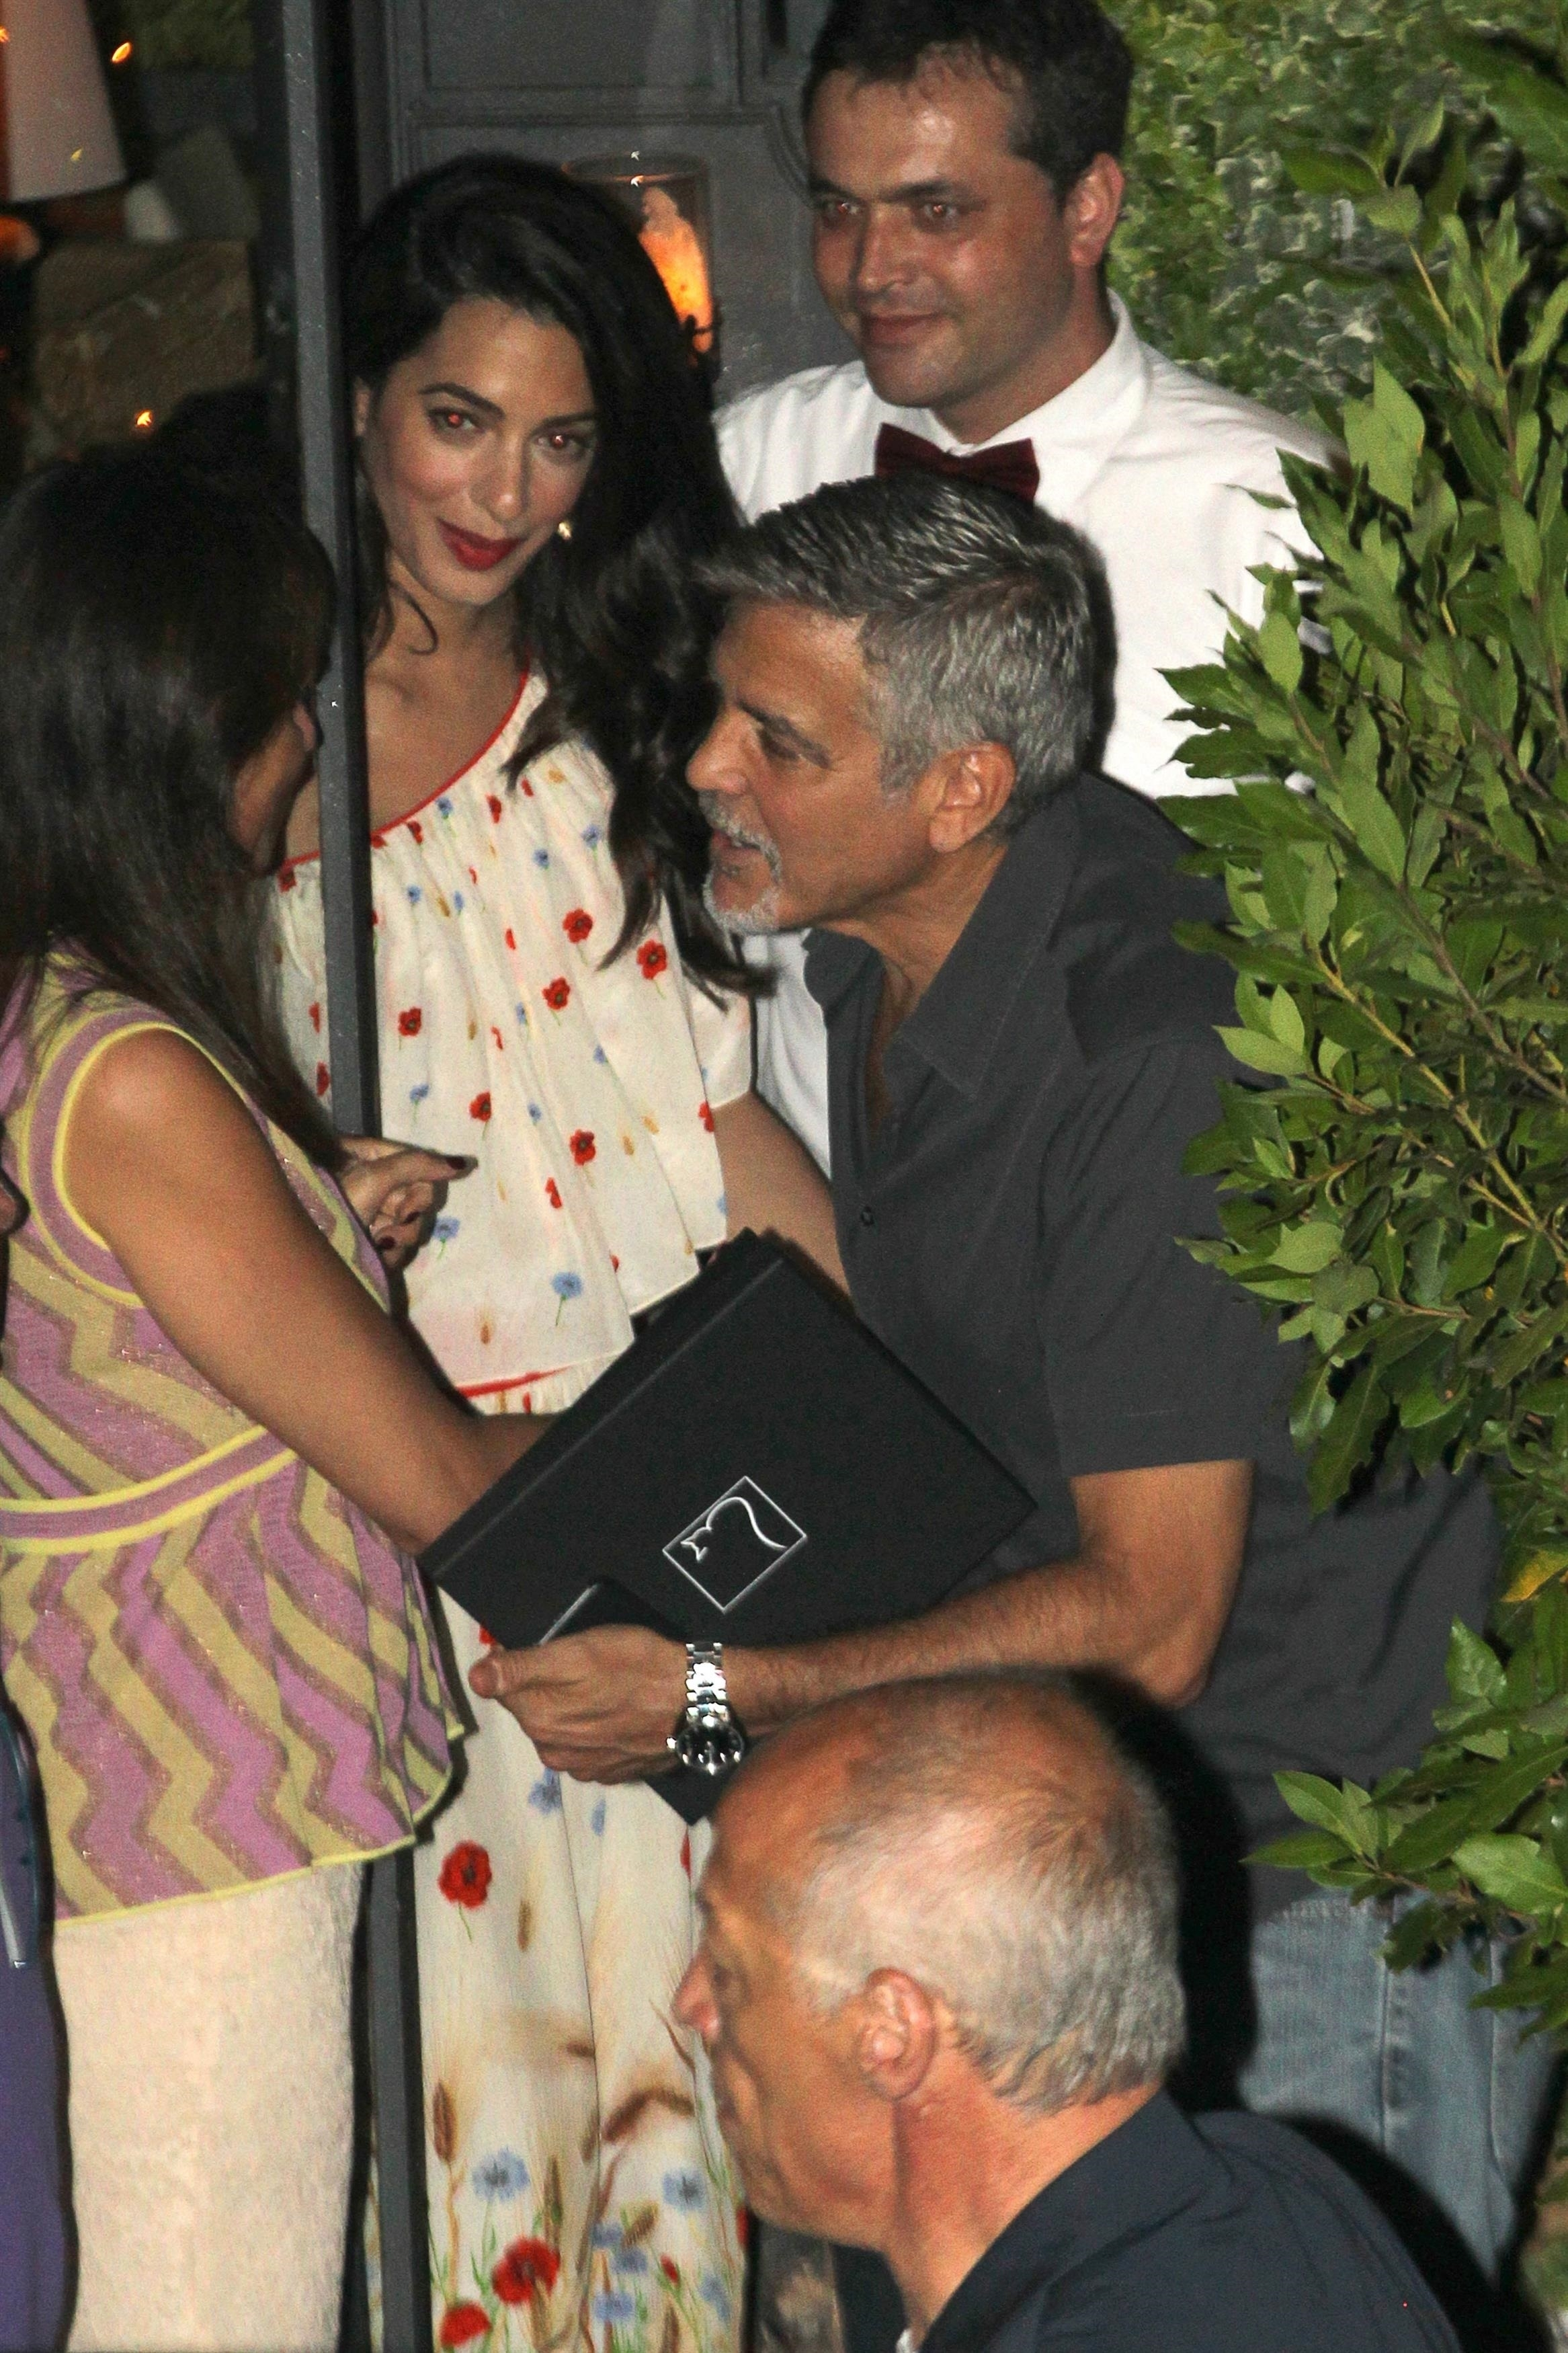 George Clooney and his wife, Amal Clooney, are spotted leaving dinner at Il Gatto Nero in Como, Italy, on July 11, 2017.